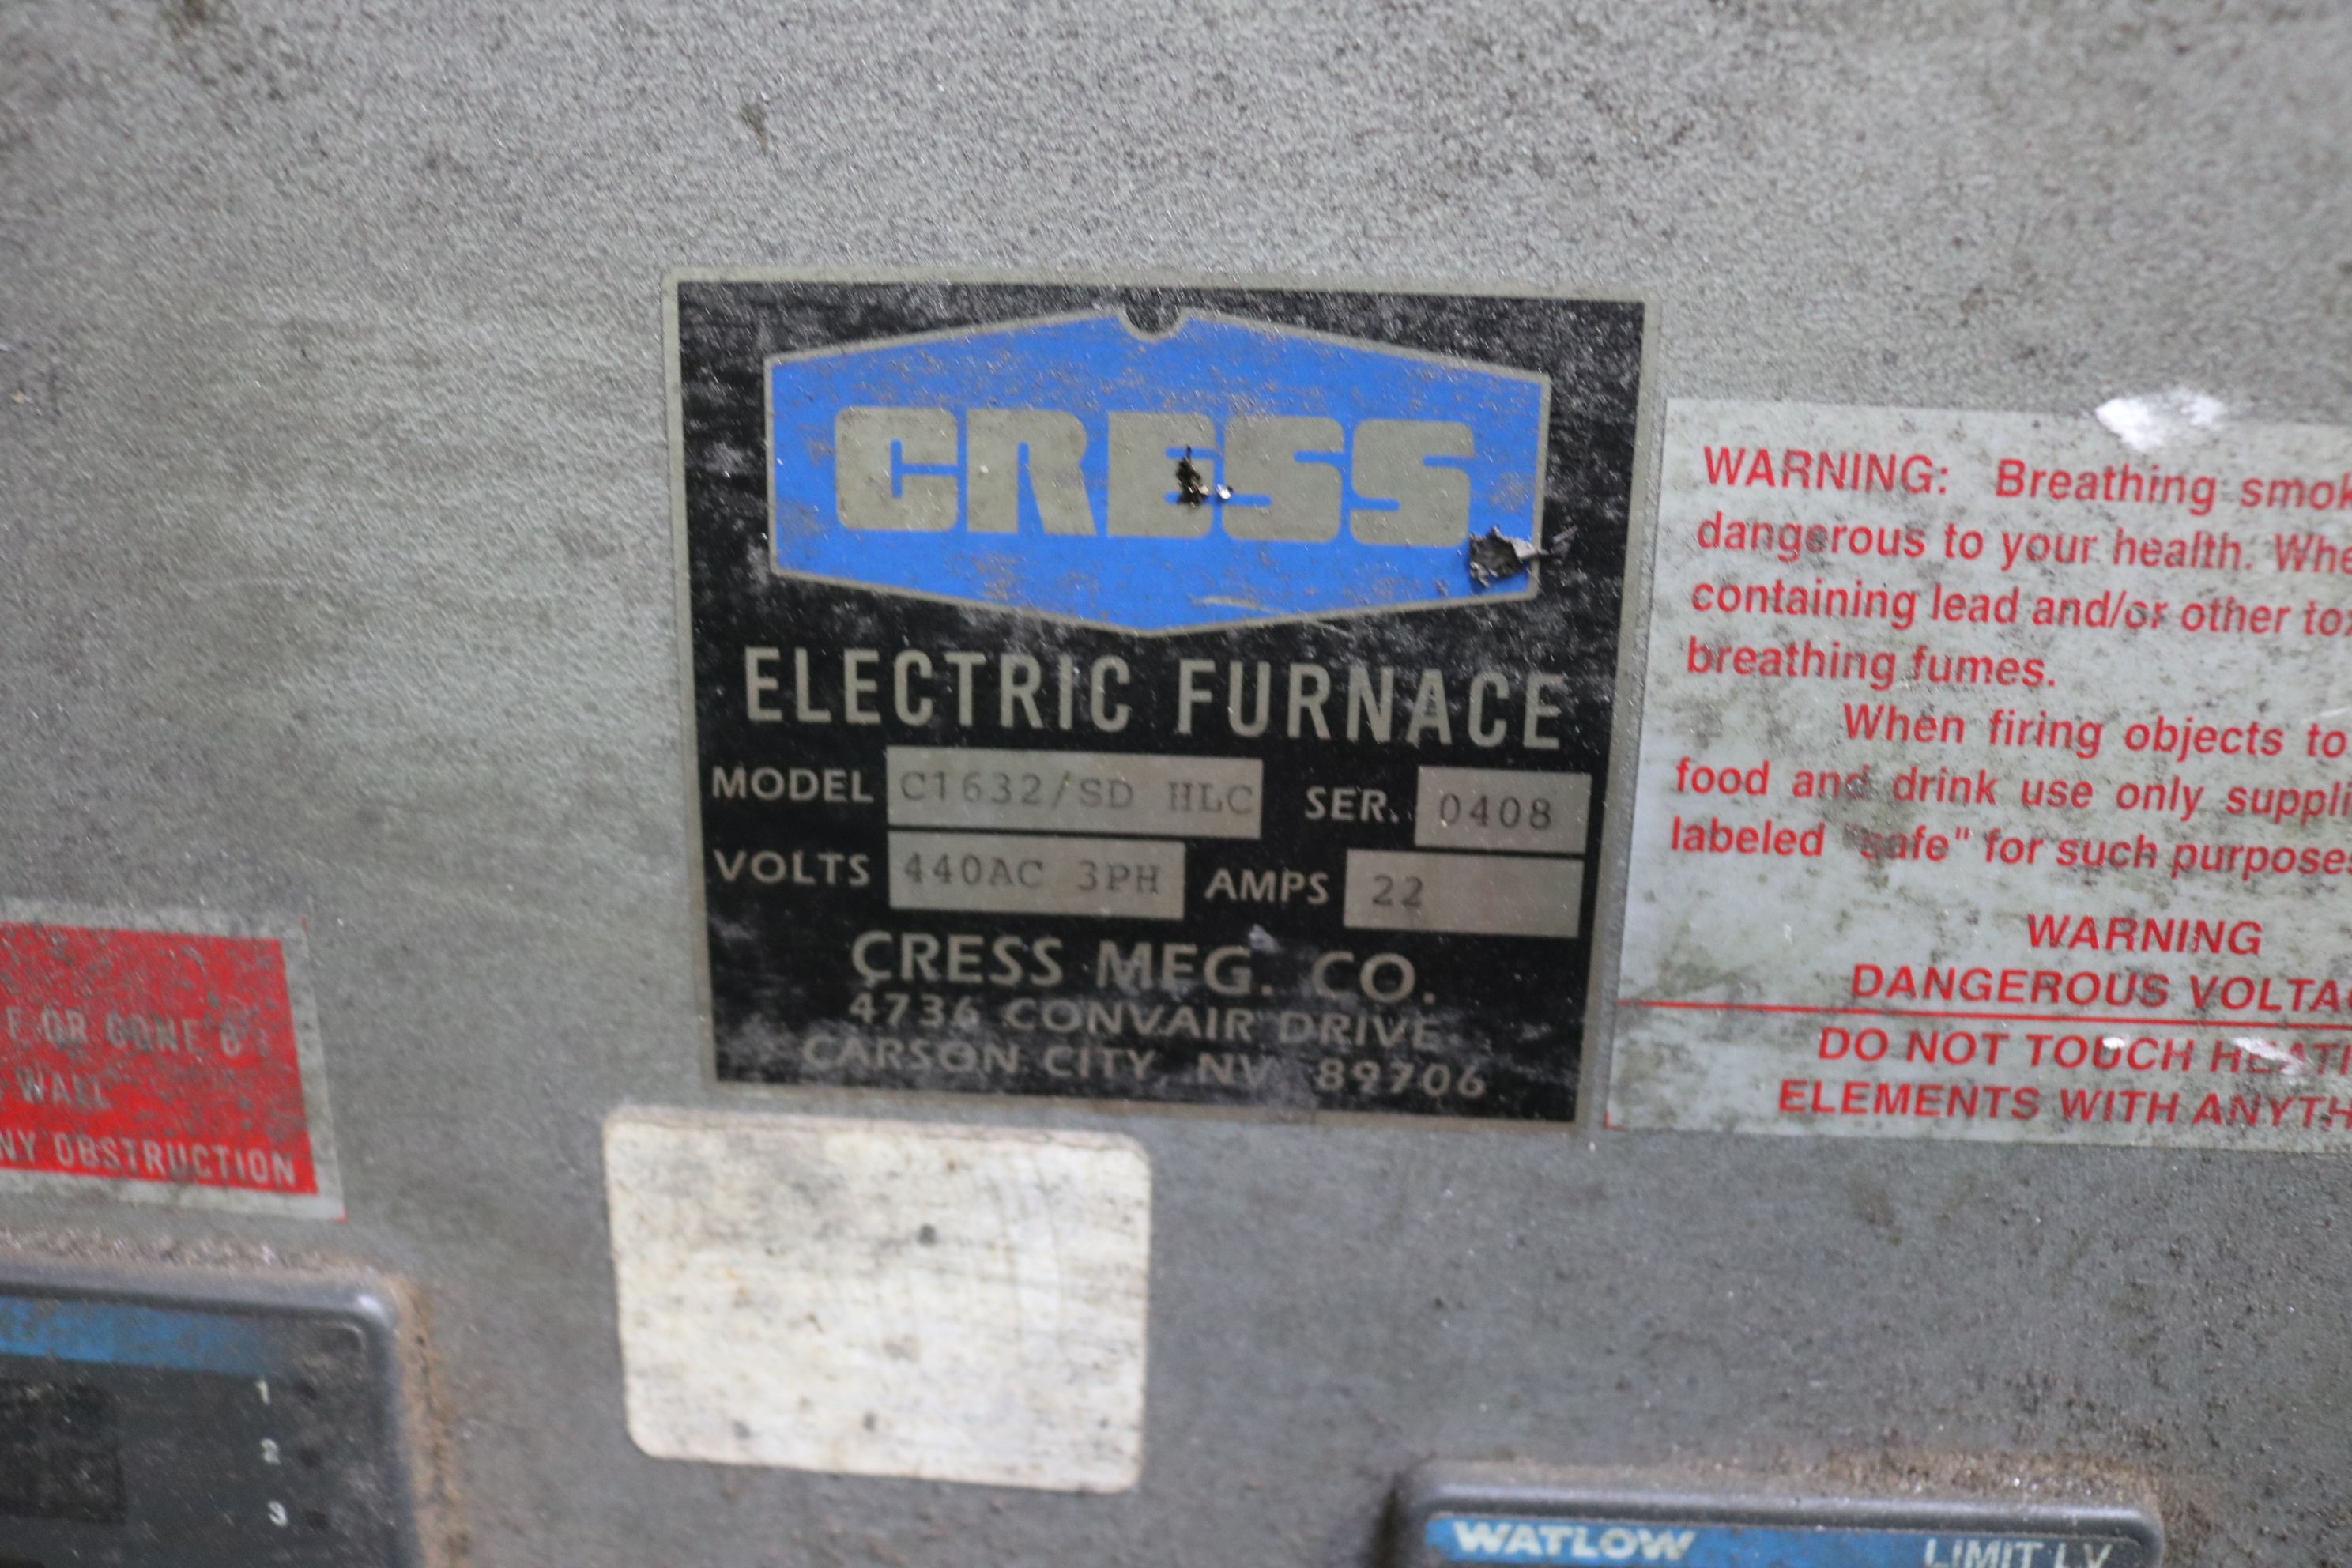 Lot 27 - CRESS ELECTRIC FURNACE, MODEL C1632/SD HLC, S/N 0408